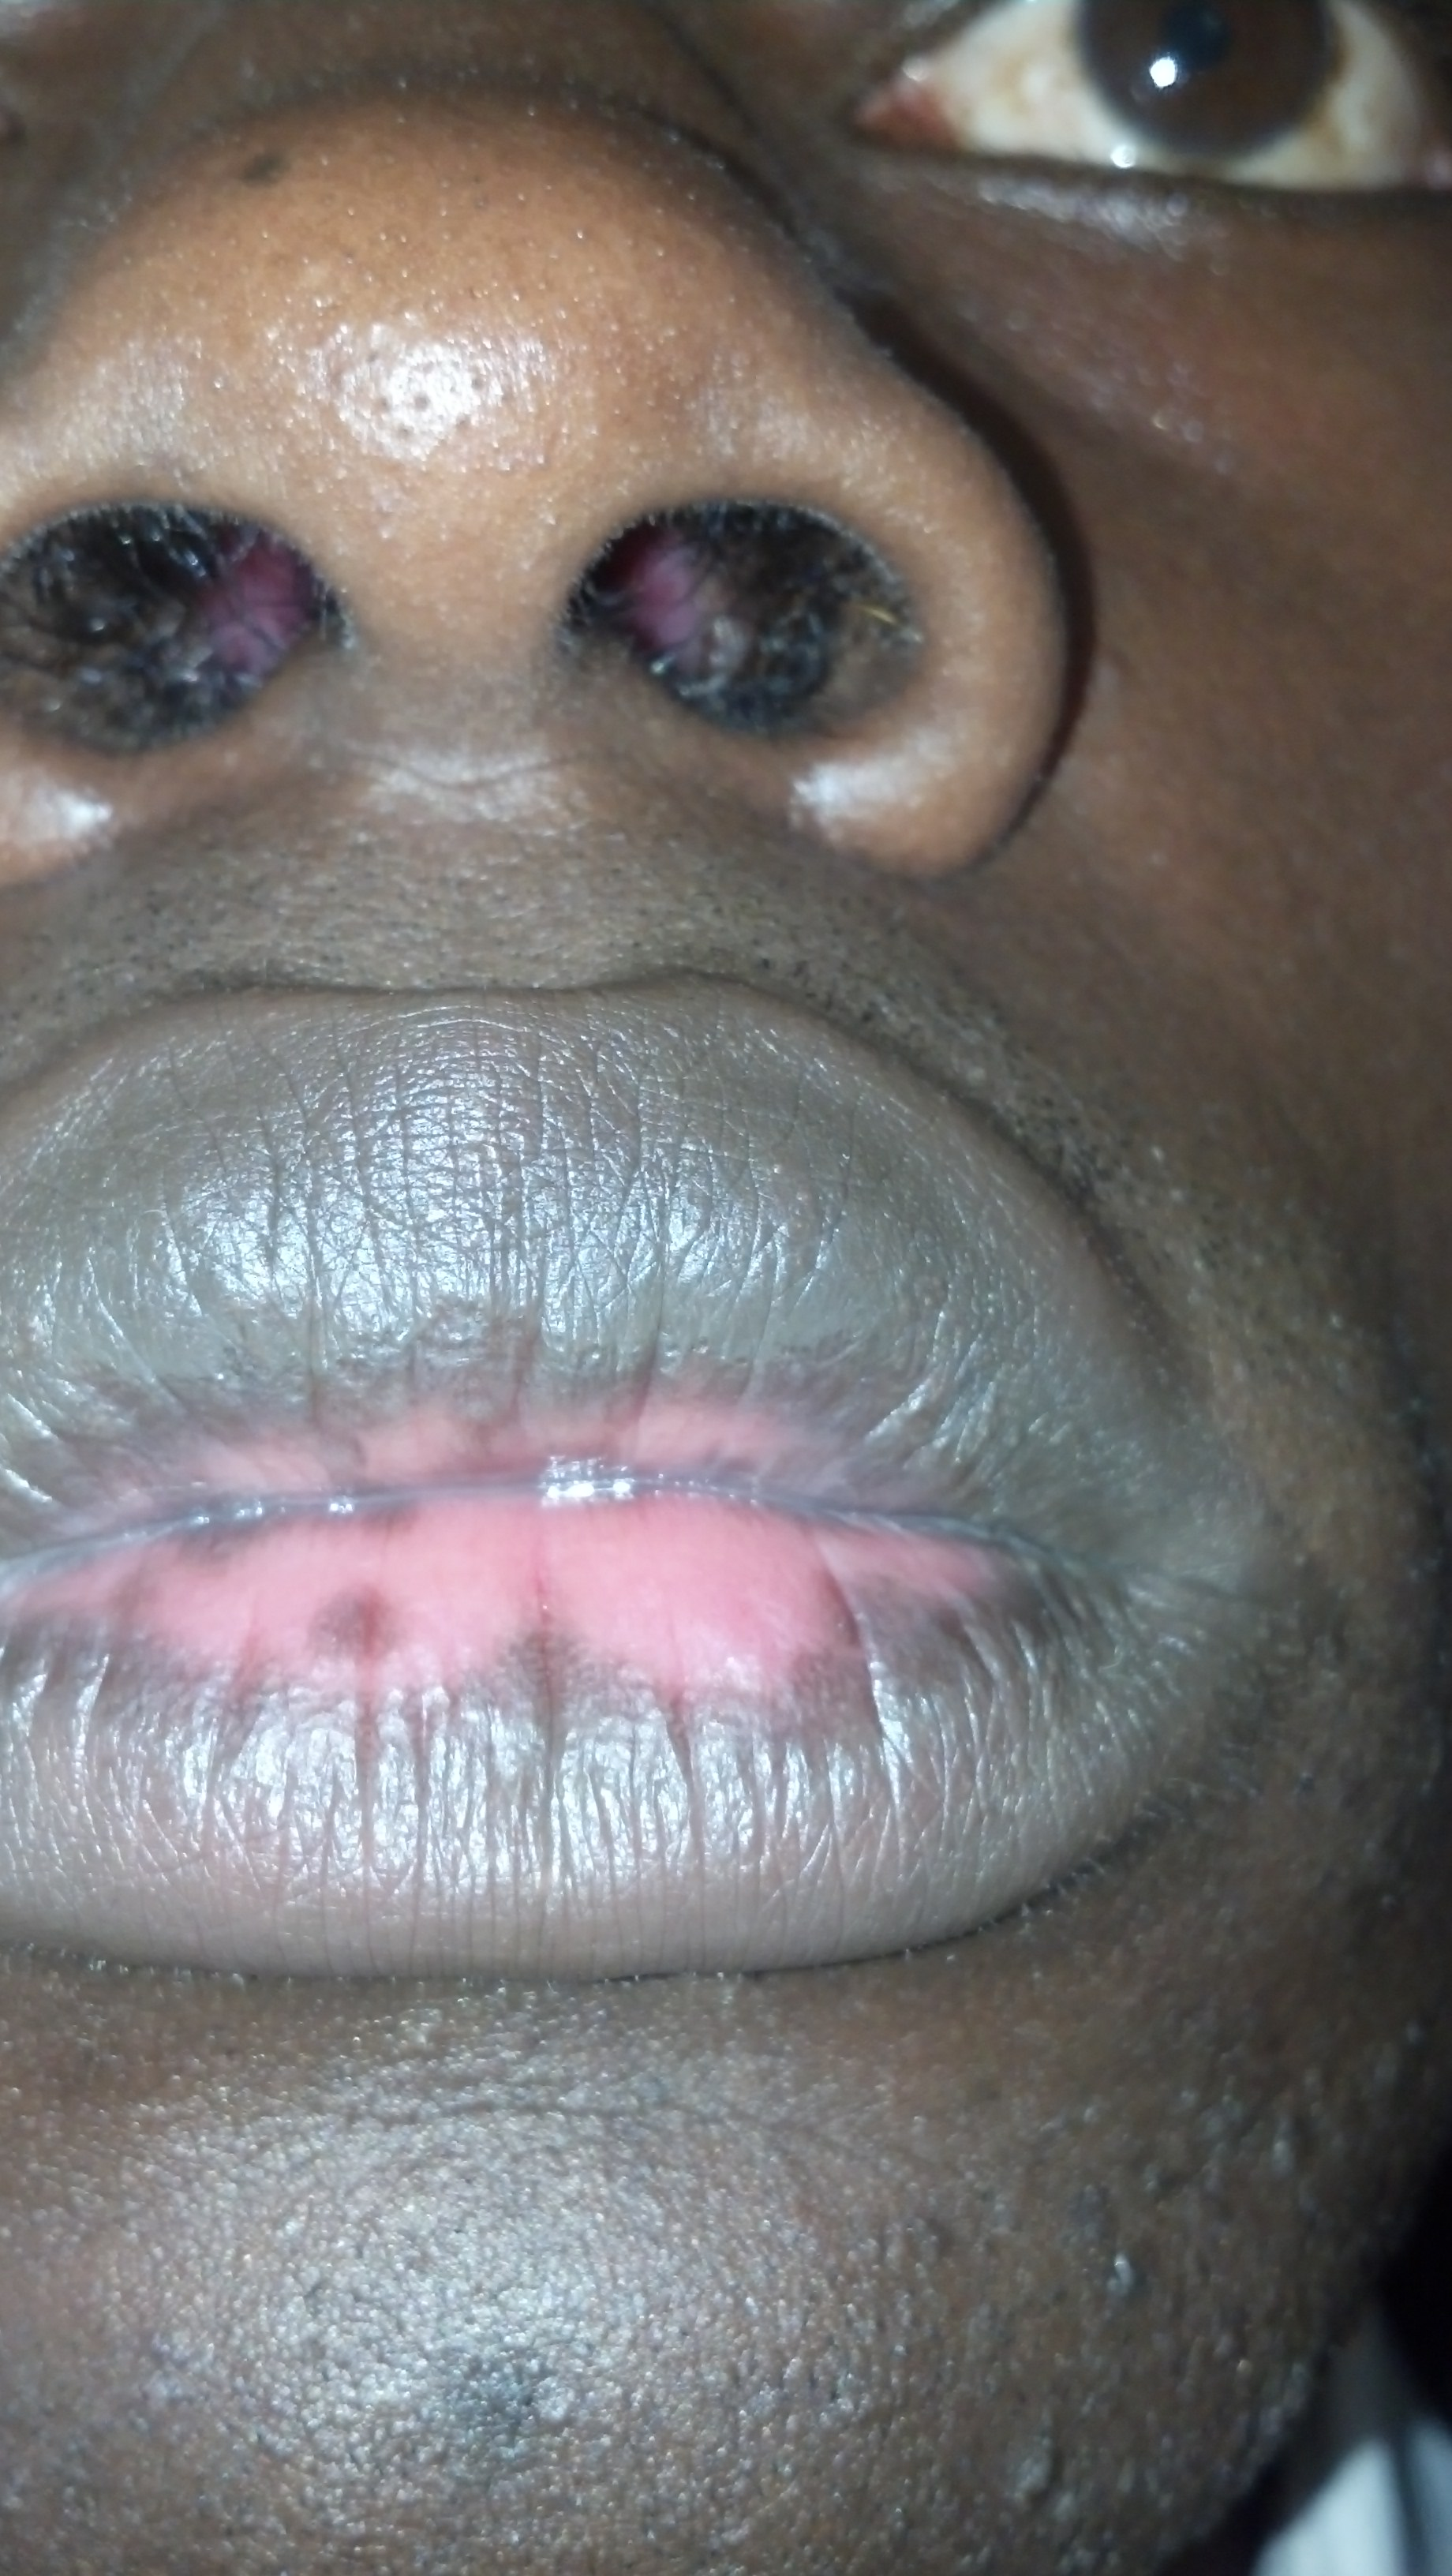 Hello Dr., parts of my lips have changed color from black to